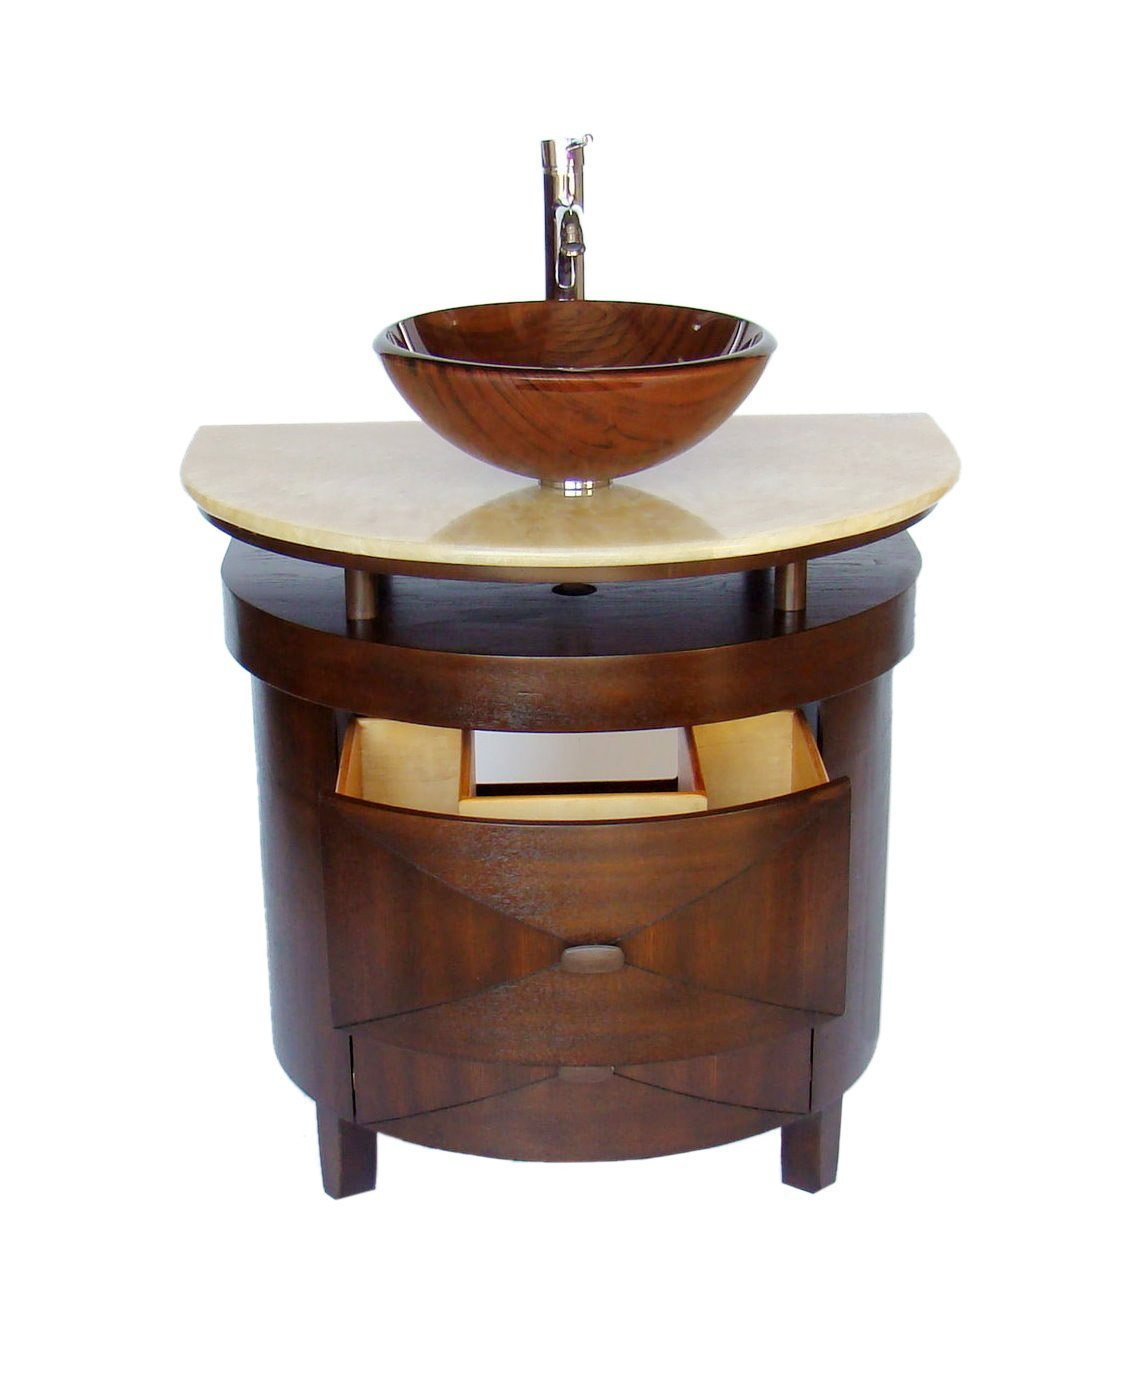 Bathroom available in 5 finishes vessel bathroom sinks msrp 425 - 32 Vessel Sink Bathroom Vanity Model Bwv 026 Verdana Amazon Com